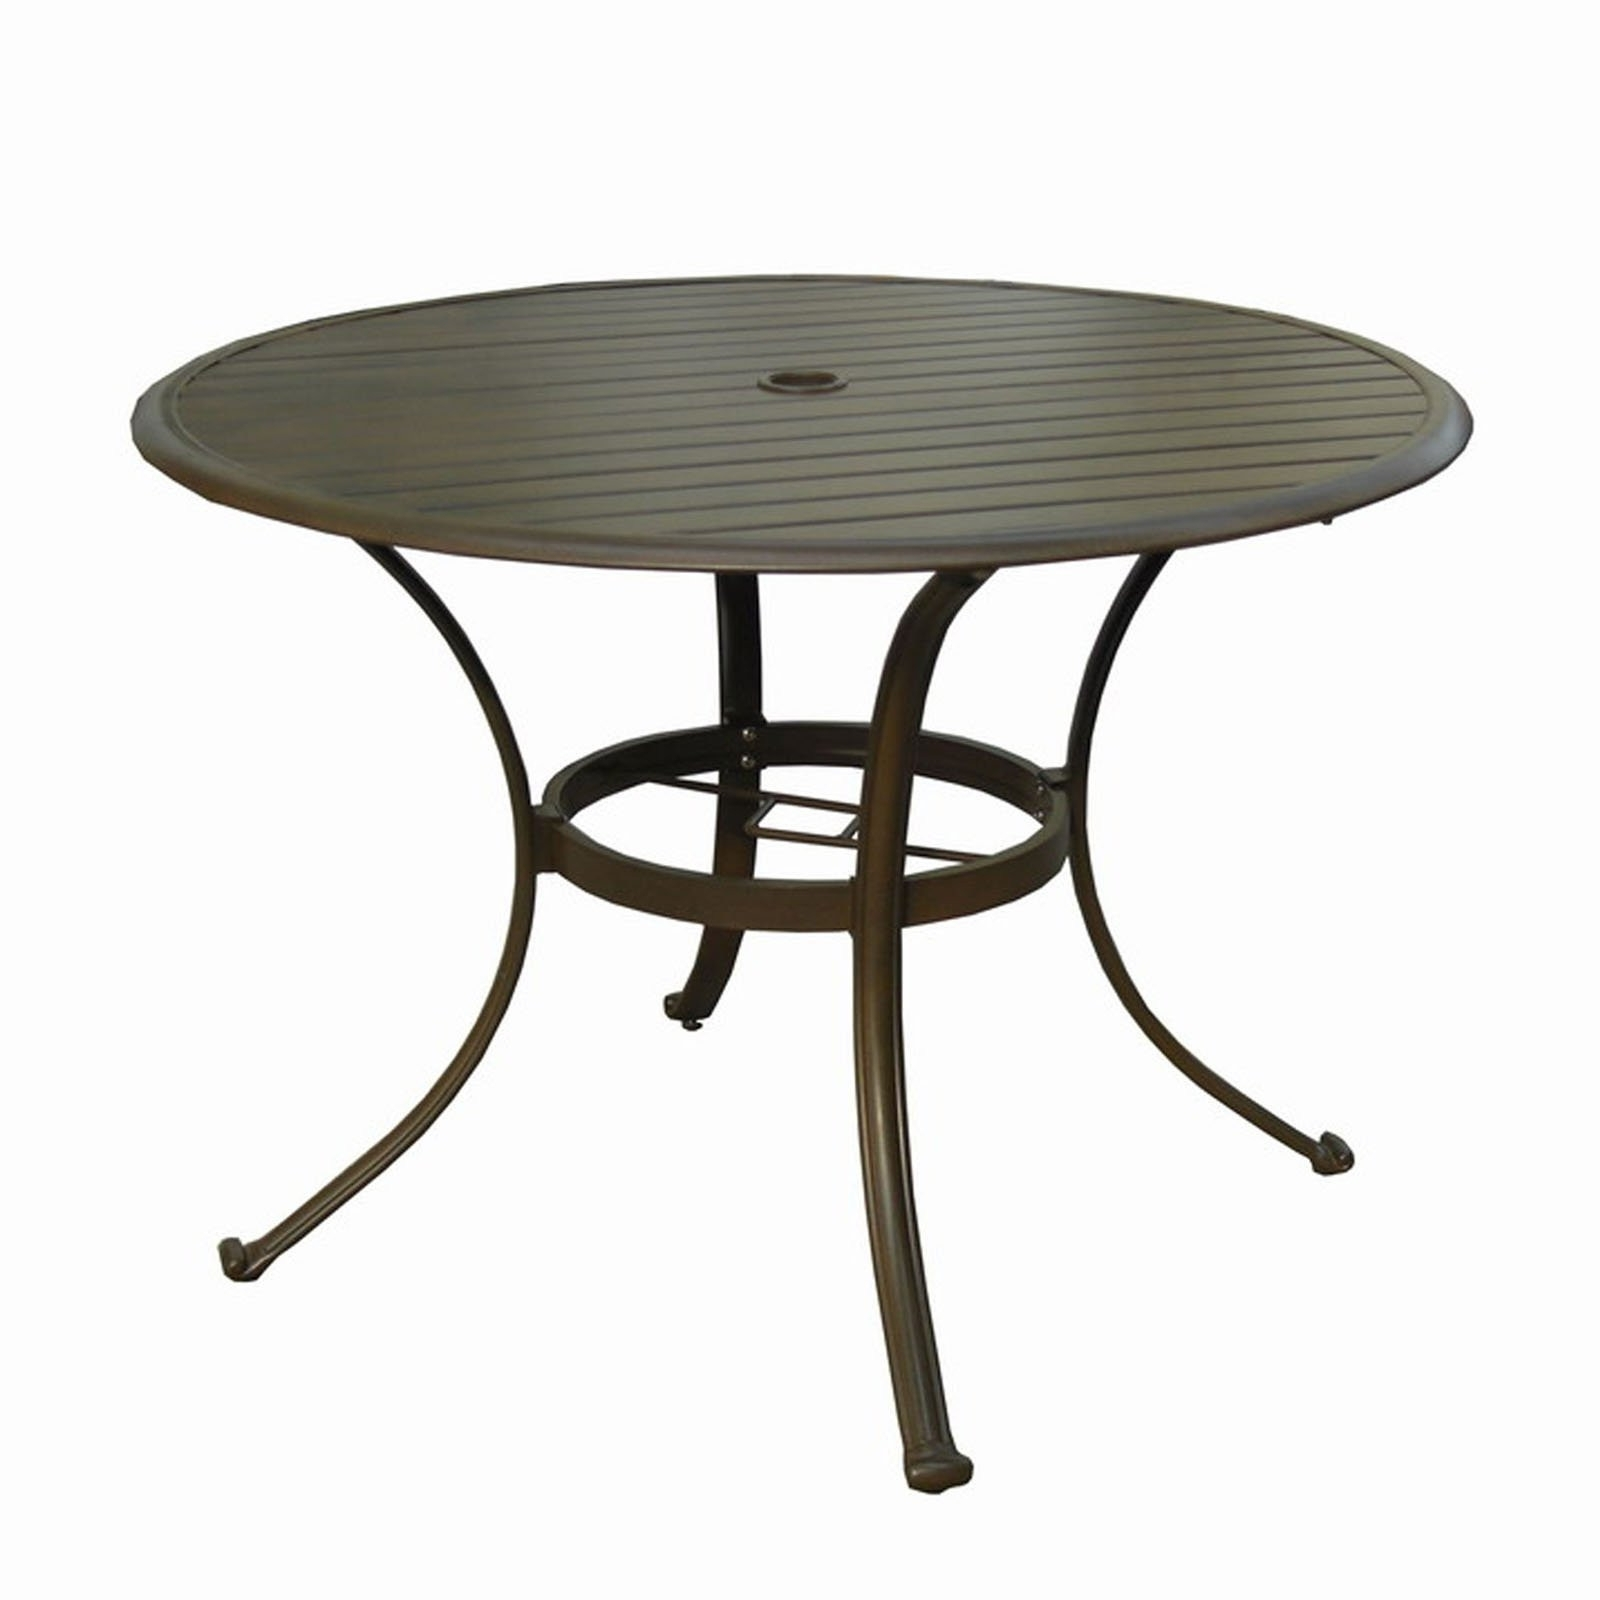 Well Liked Outdoor Tablecloth Umbrella Hole New Outdoor Dining Table With With Regard To Patio Tables With Umbrella Hole (View 18 of 20)